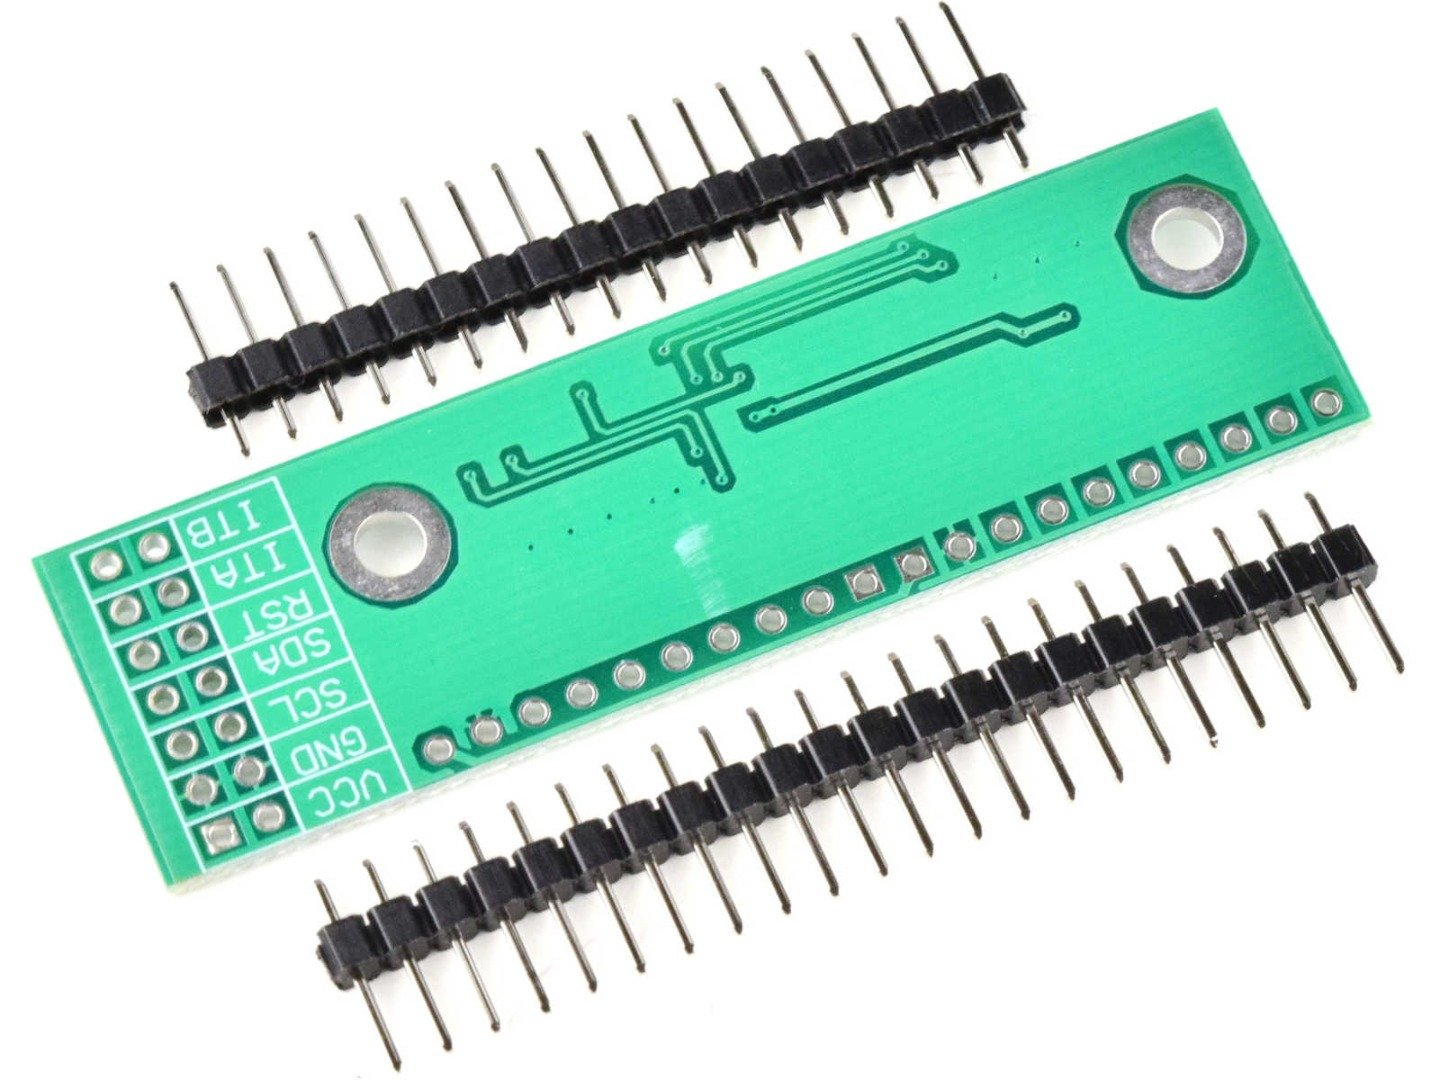 16 Channel GPIO Expander for Arduino etc. with MCP23017 and I2C Interface